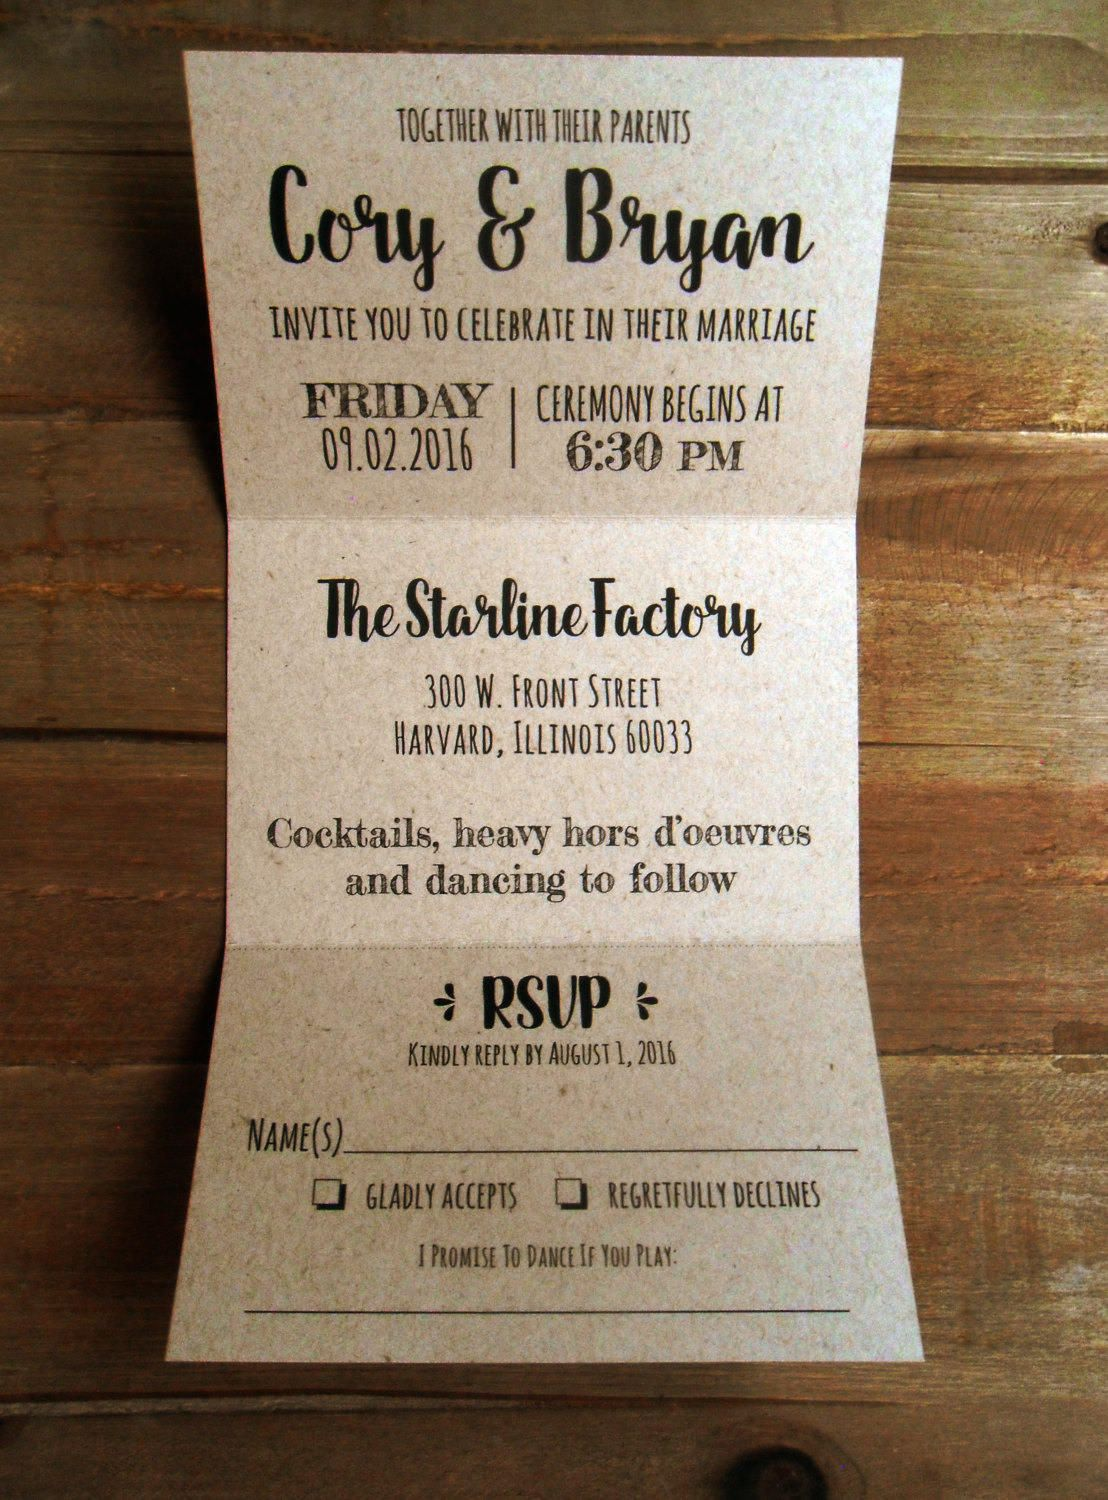 45+ Trifold wedding invitations with rsvp ideas in 2021